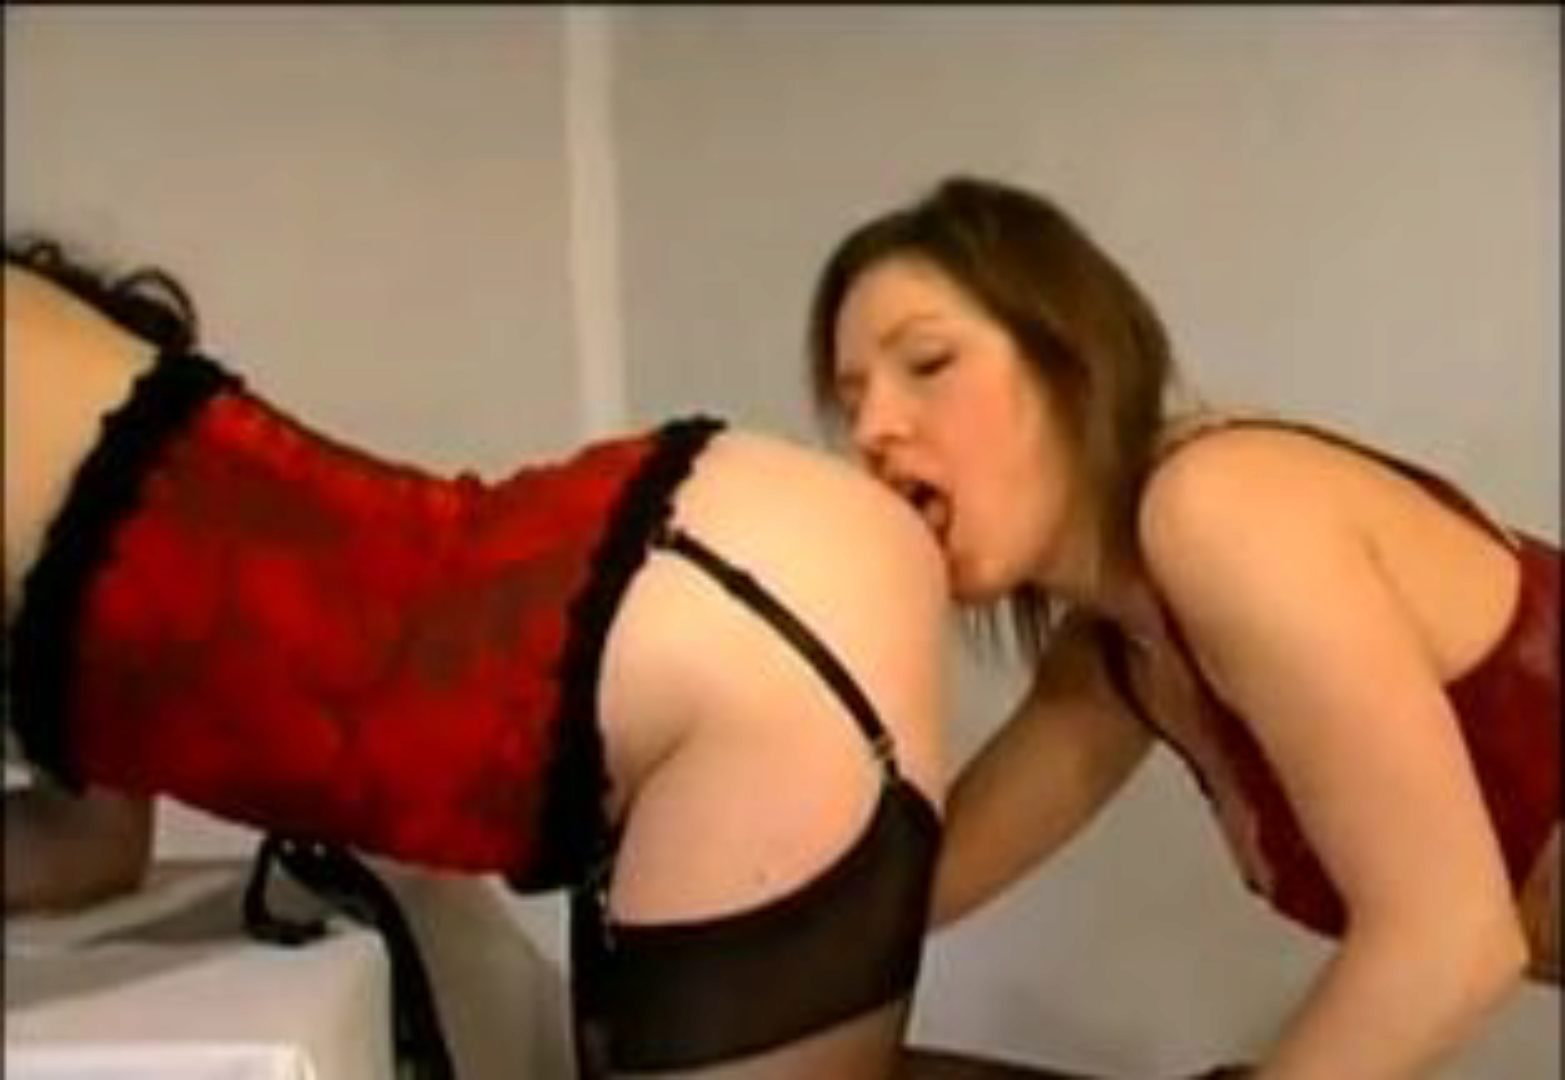 Stockings Piss & Pussy Eating, Free Stockings Pussy Porn Video Watch Stockings Piss & Pussy Eating movie scene on xHamster, the largest intercourse tube web resource with tons of free British Stockings Pussy & Lesbian porno movie scenes